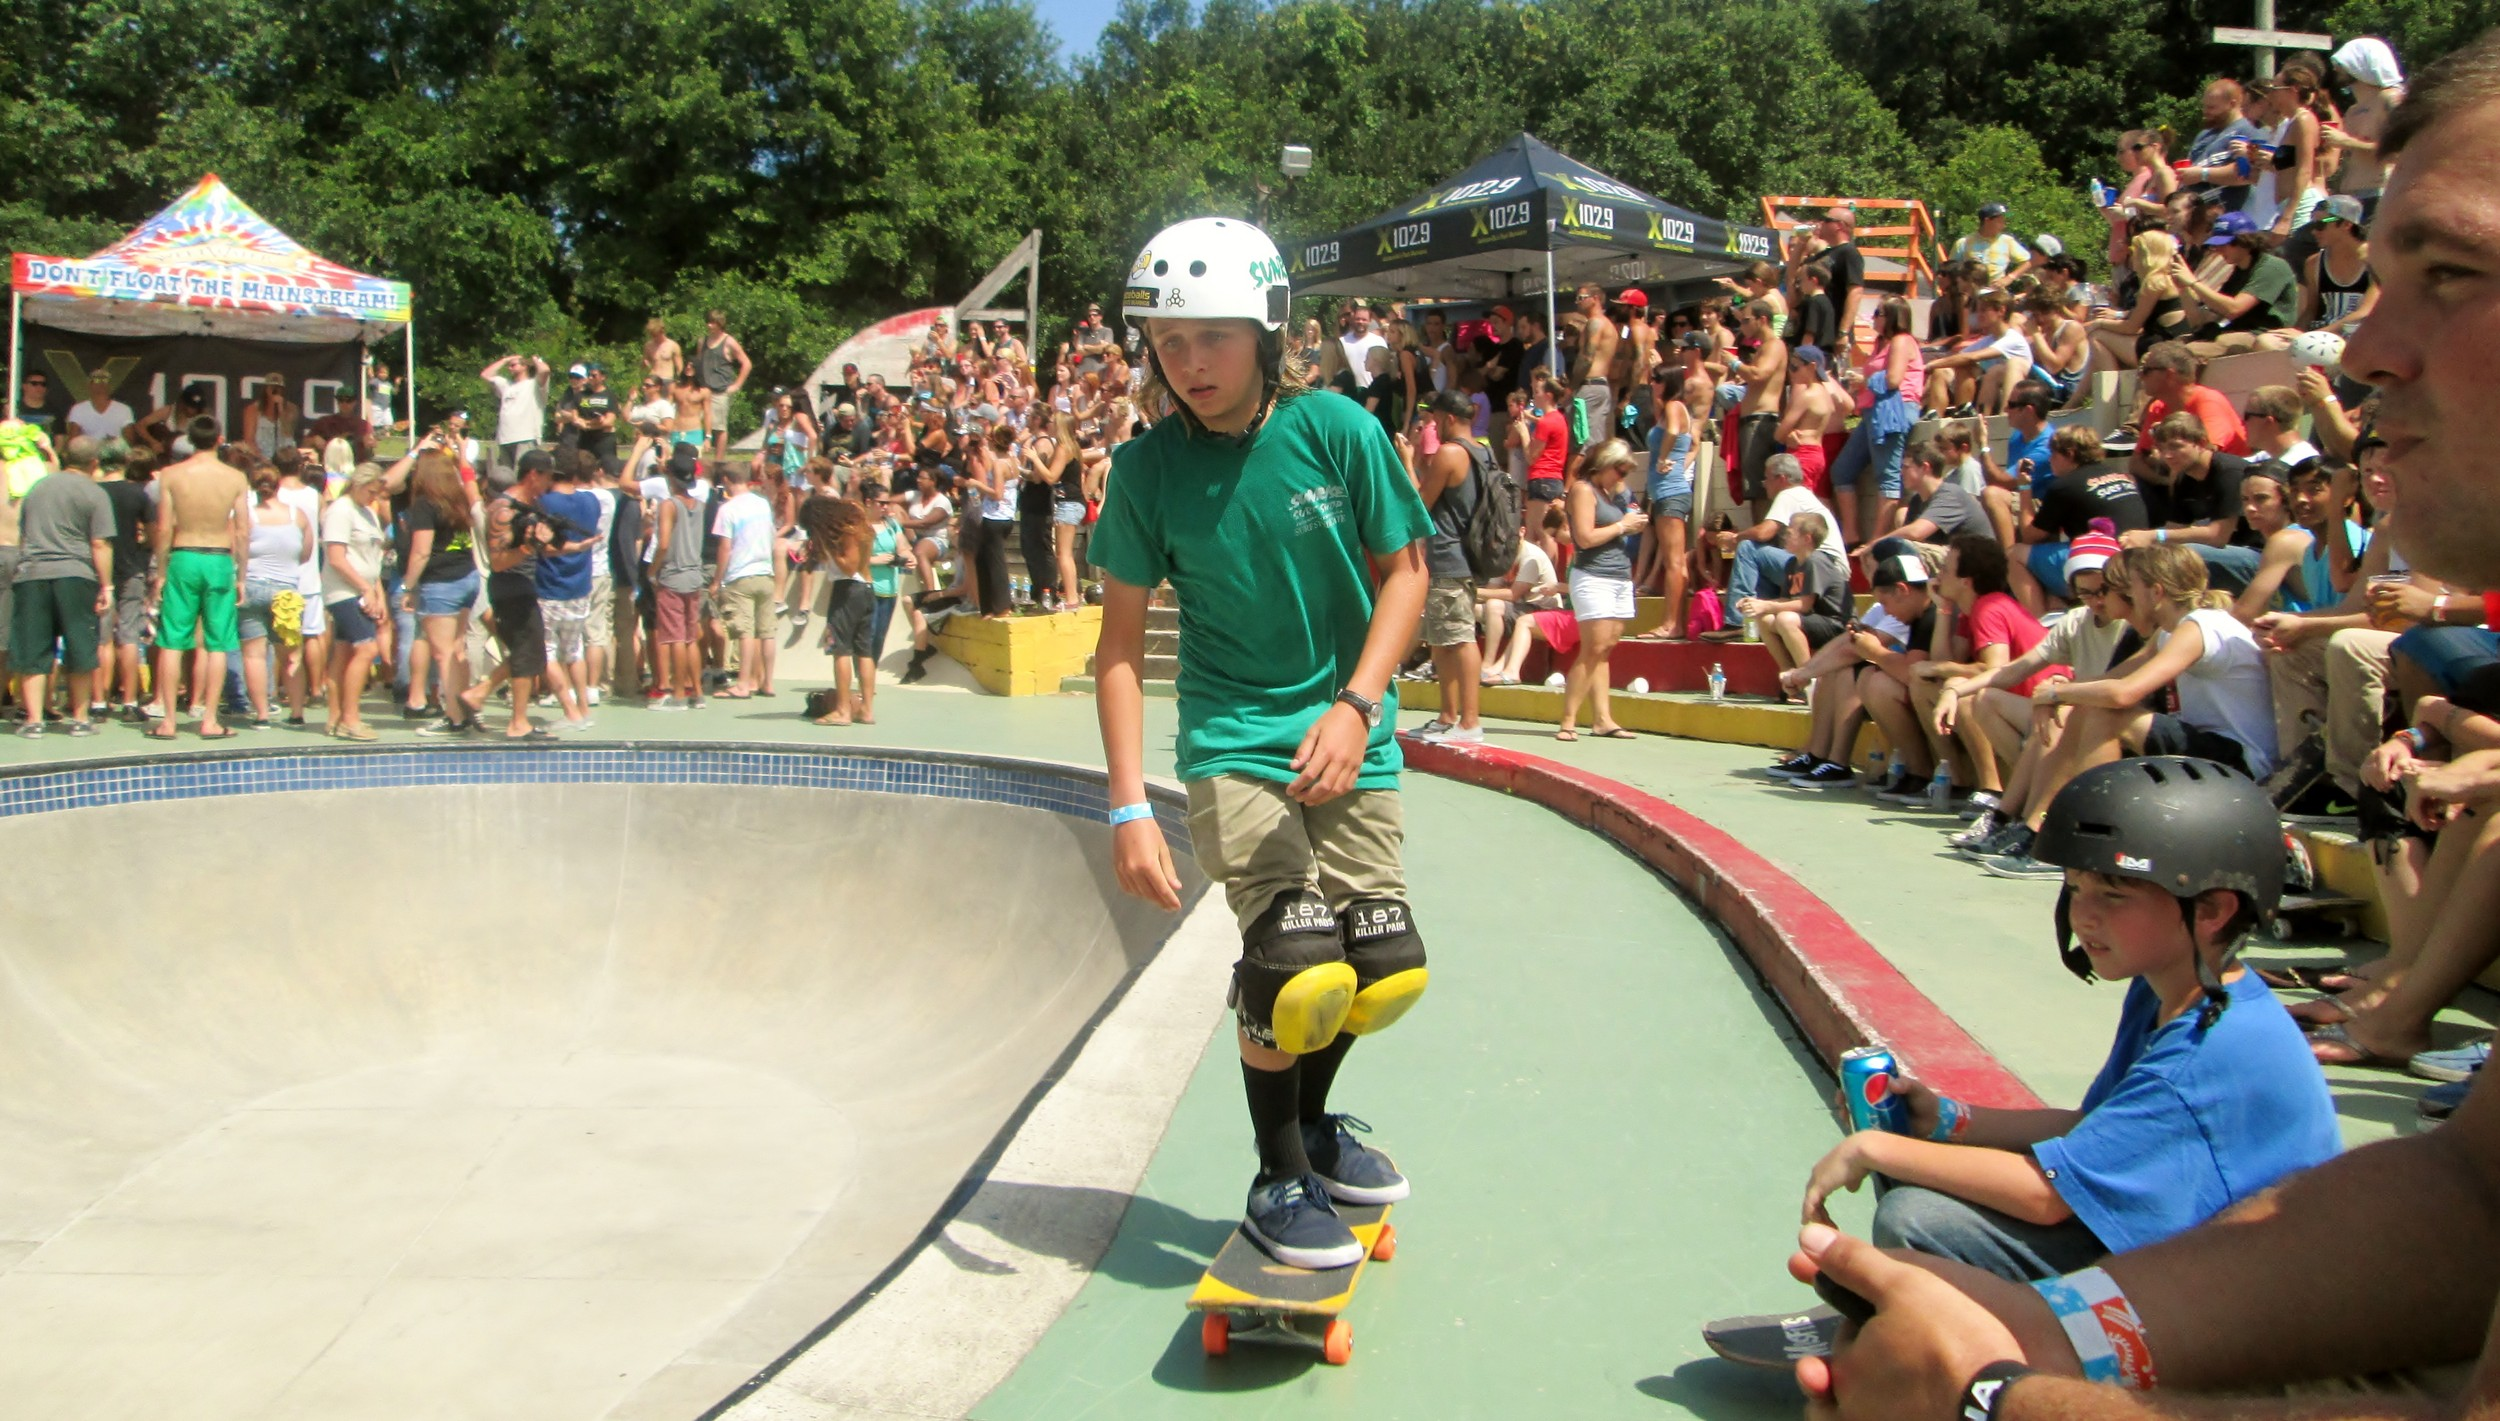 Matt Depres, an amazing young skater.  His moves blew the crowd away.